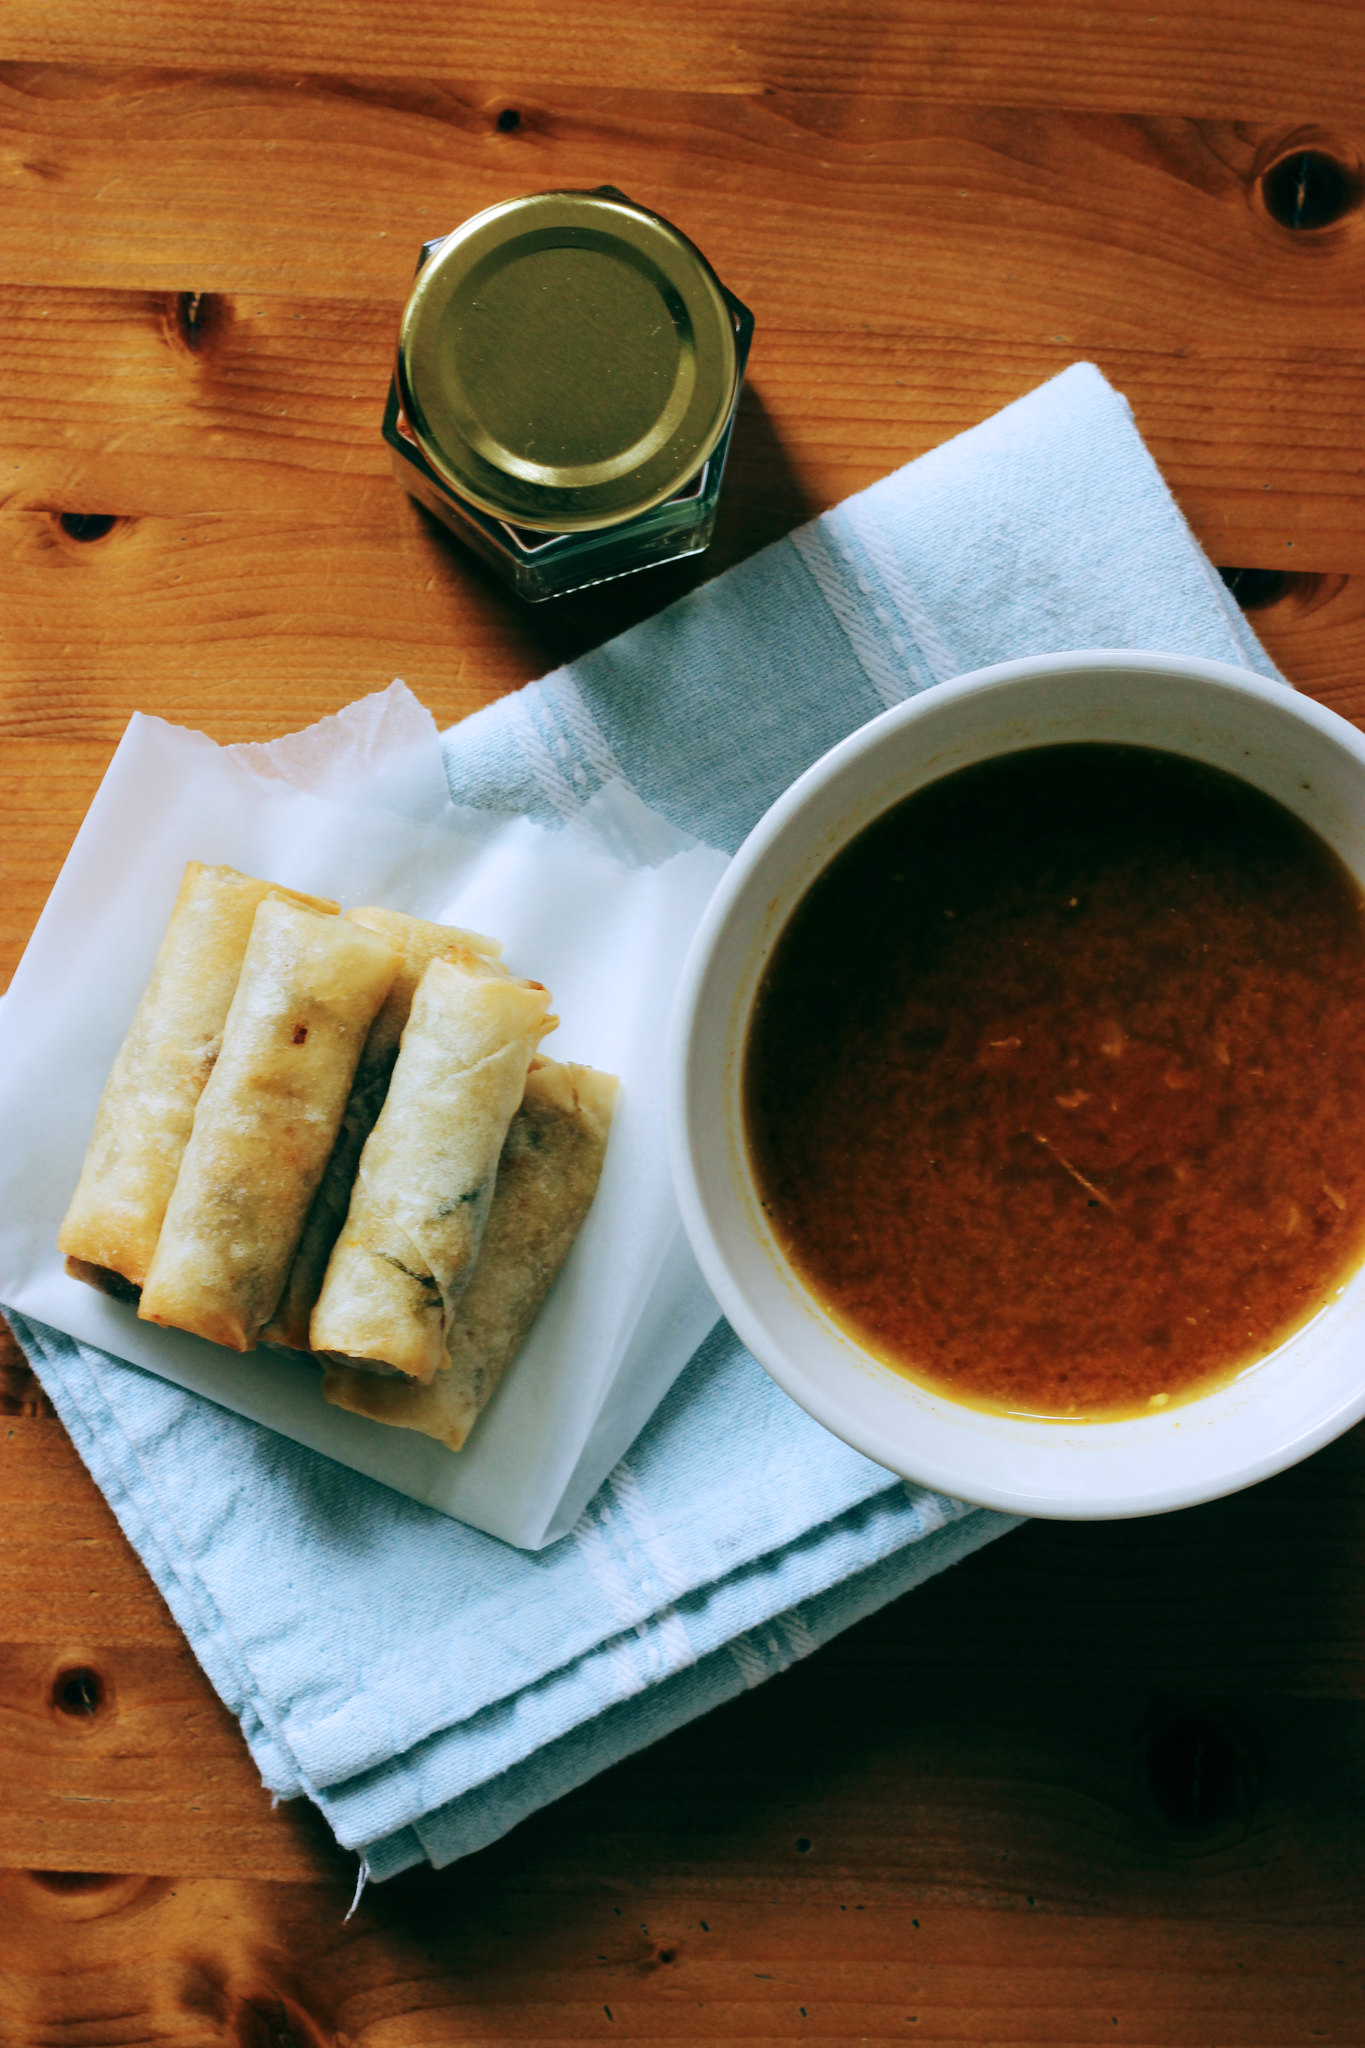 Vegetarian Spring Rolls and Tomato Soup